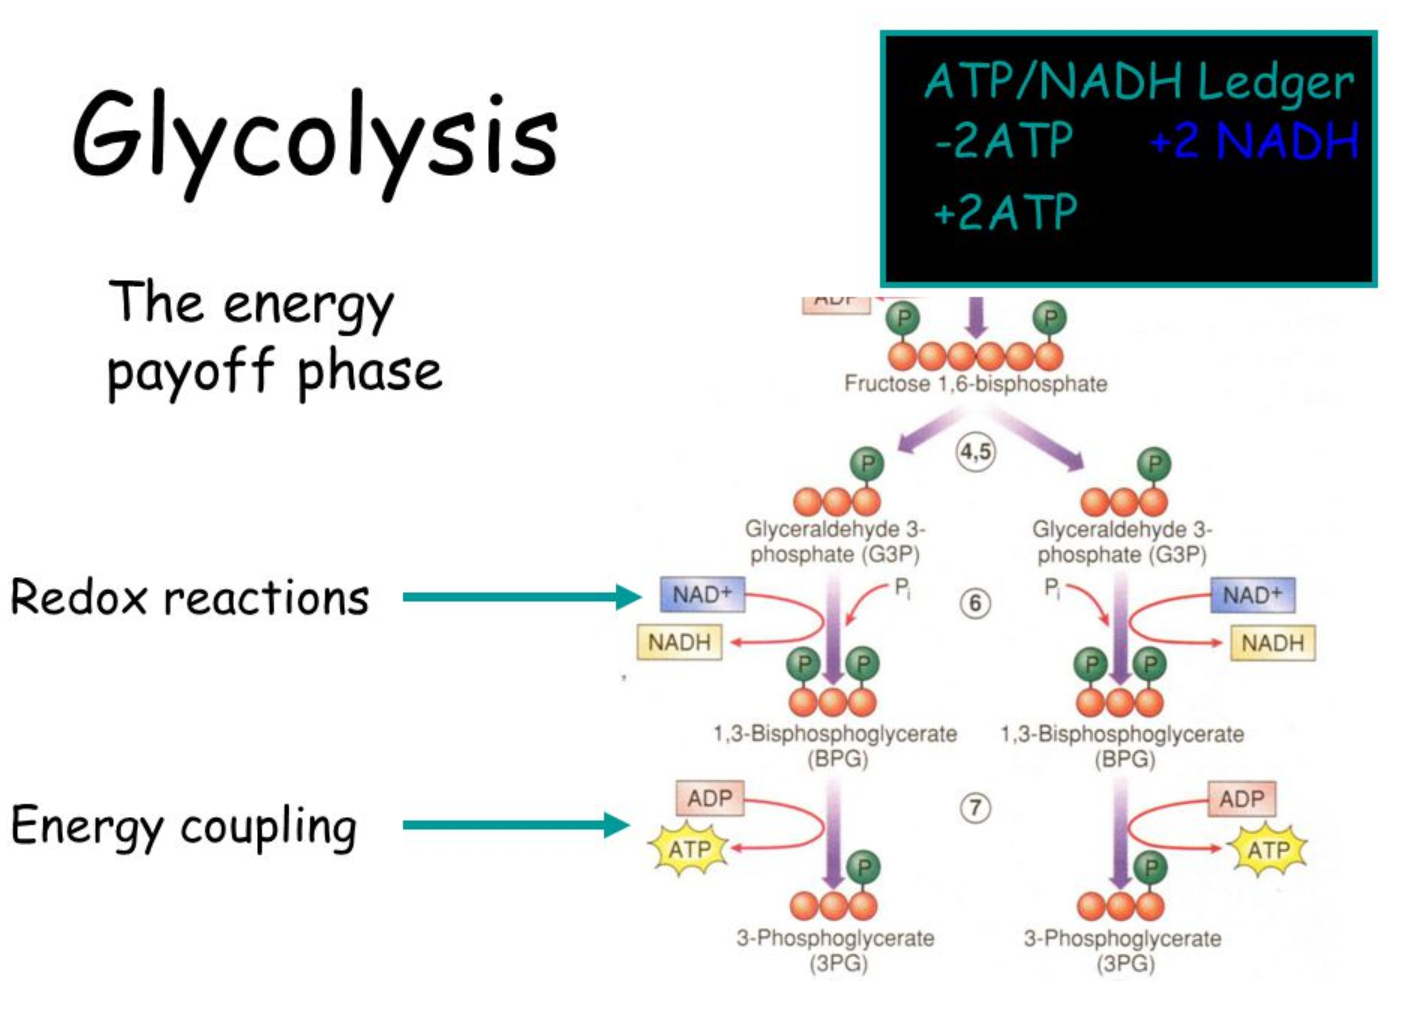 hight resolution of image 1 the cellular respiration showing glycolysis in a diagram presentation picture source i stack imgur com